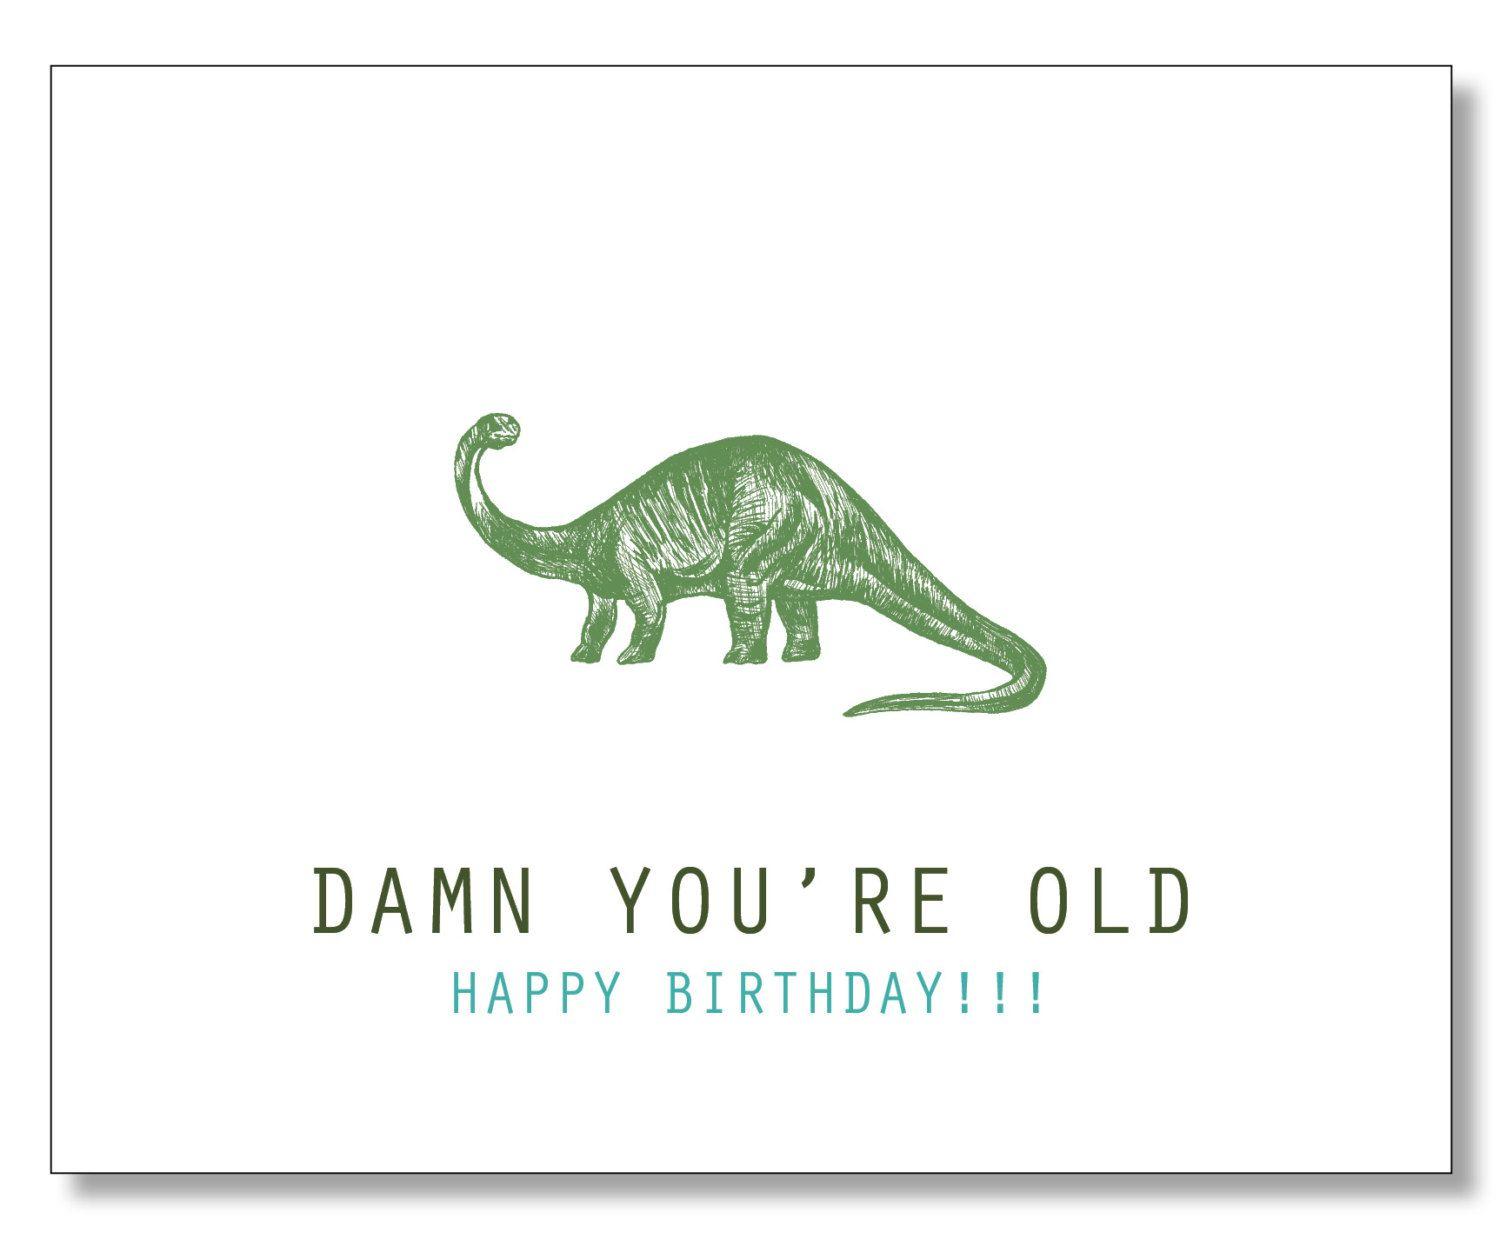 OVER THE HILL Hilarious Birthday Card Damn You're Old